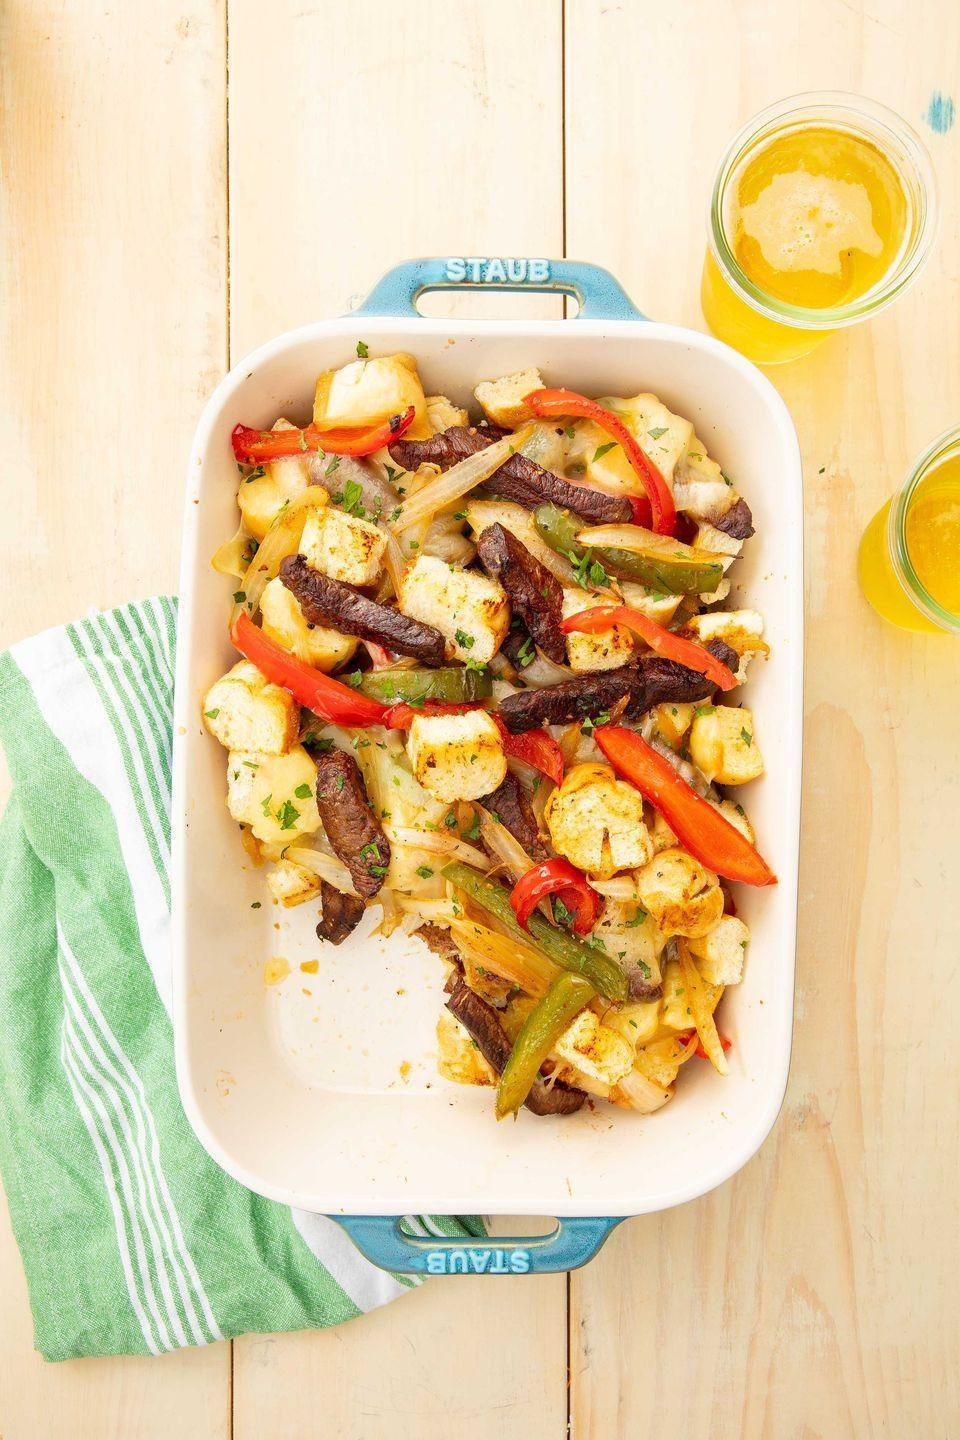 "<p>You have to try the casserole version of the legendary sandwich.</p><p>Get the recipe from <a href=""/cooking/recipe-ideas/recipes/a54335/philly-cheesesteak-casserole-recipe/"" data-ylk=""slk:Delish"" class=""link rapid-noclick-resp"">Delish</a>.</p>"